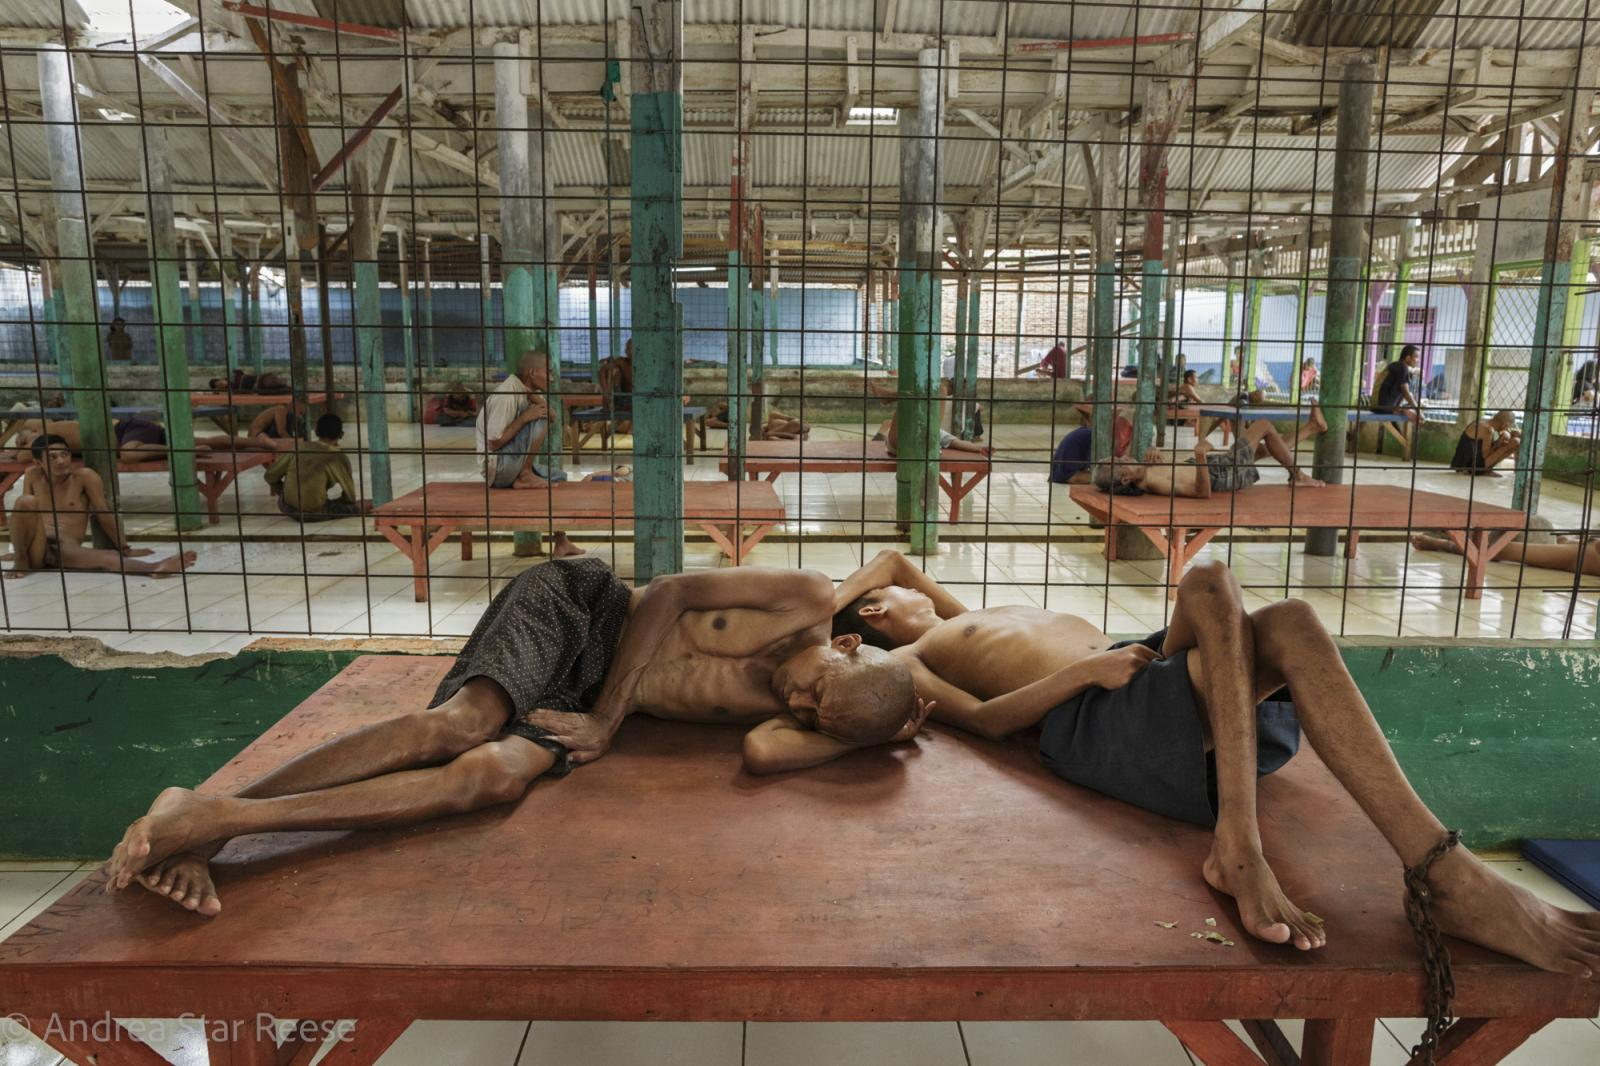 The Yayasan Galuh Rehabilitation Center in Bekasi, on the outskirts of Jakarta, before it was renovated. Men and women with mental health conditions were locked up in a grilled area of the facility without sanitation, for as long as nine years. © 2012 Andrea Star Reese